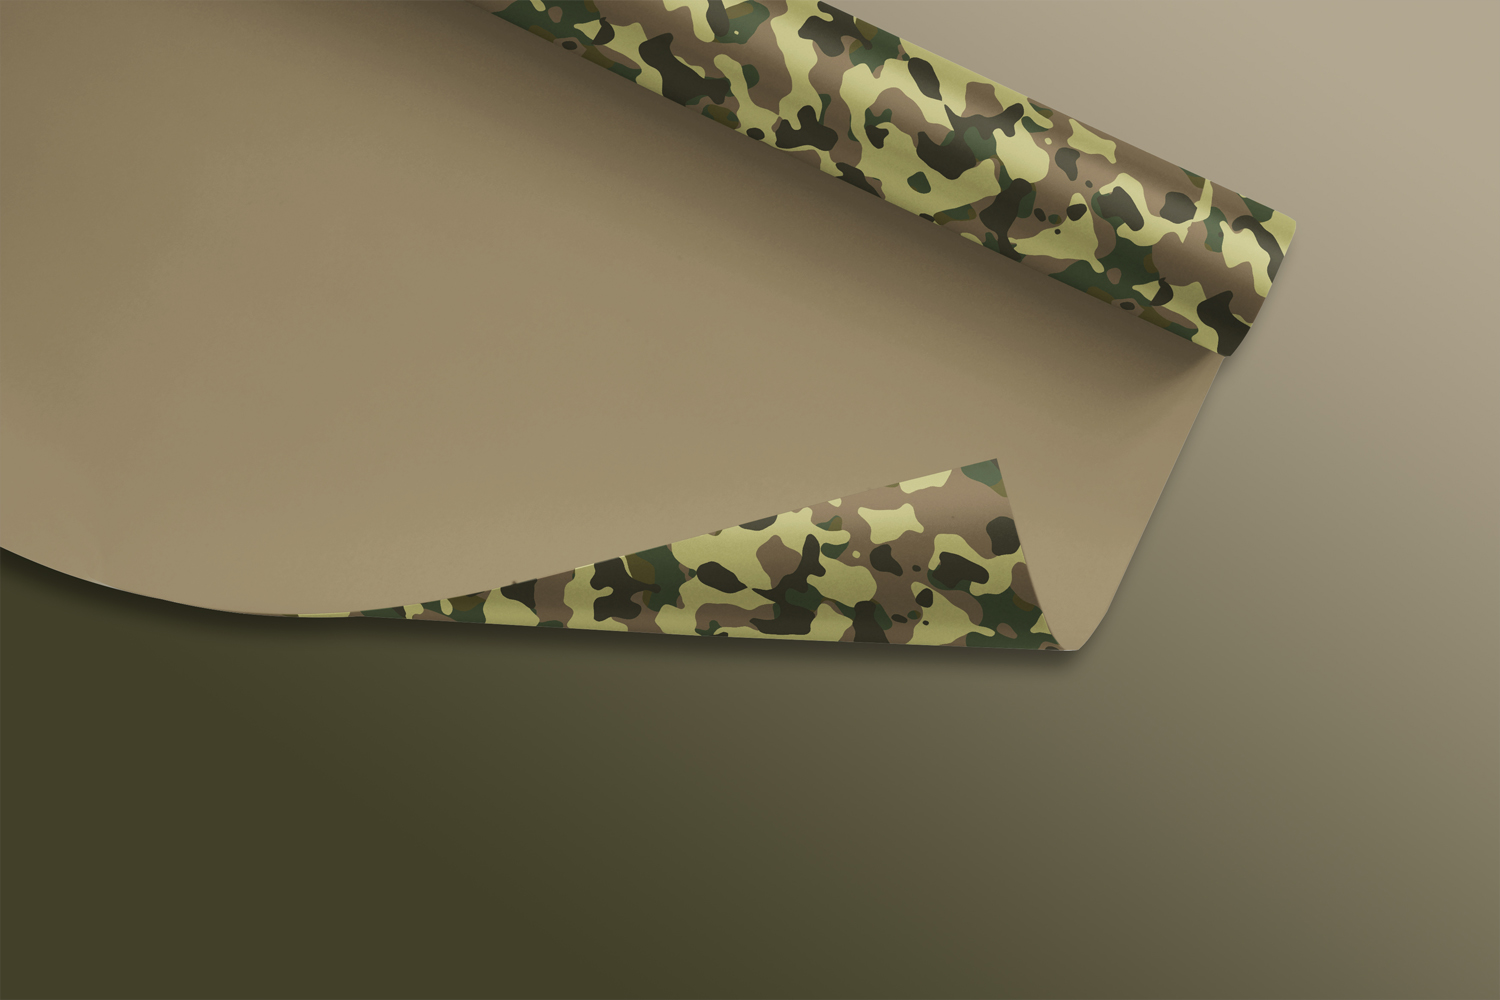 40 Alternative Camouflage Paper Designs example image 21